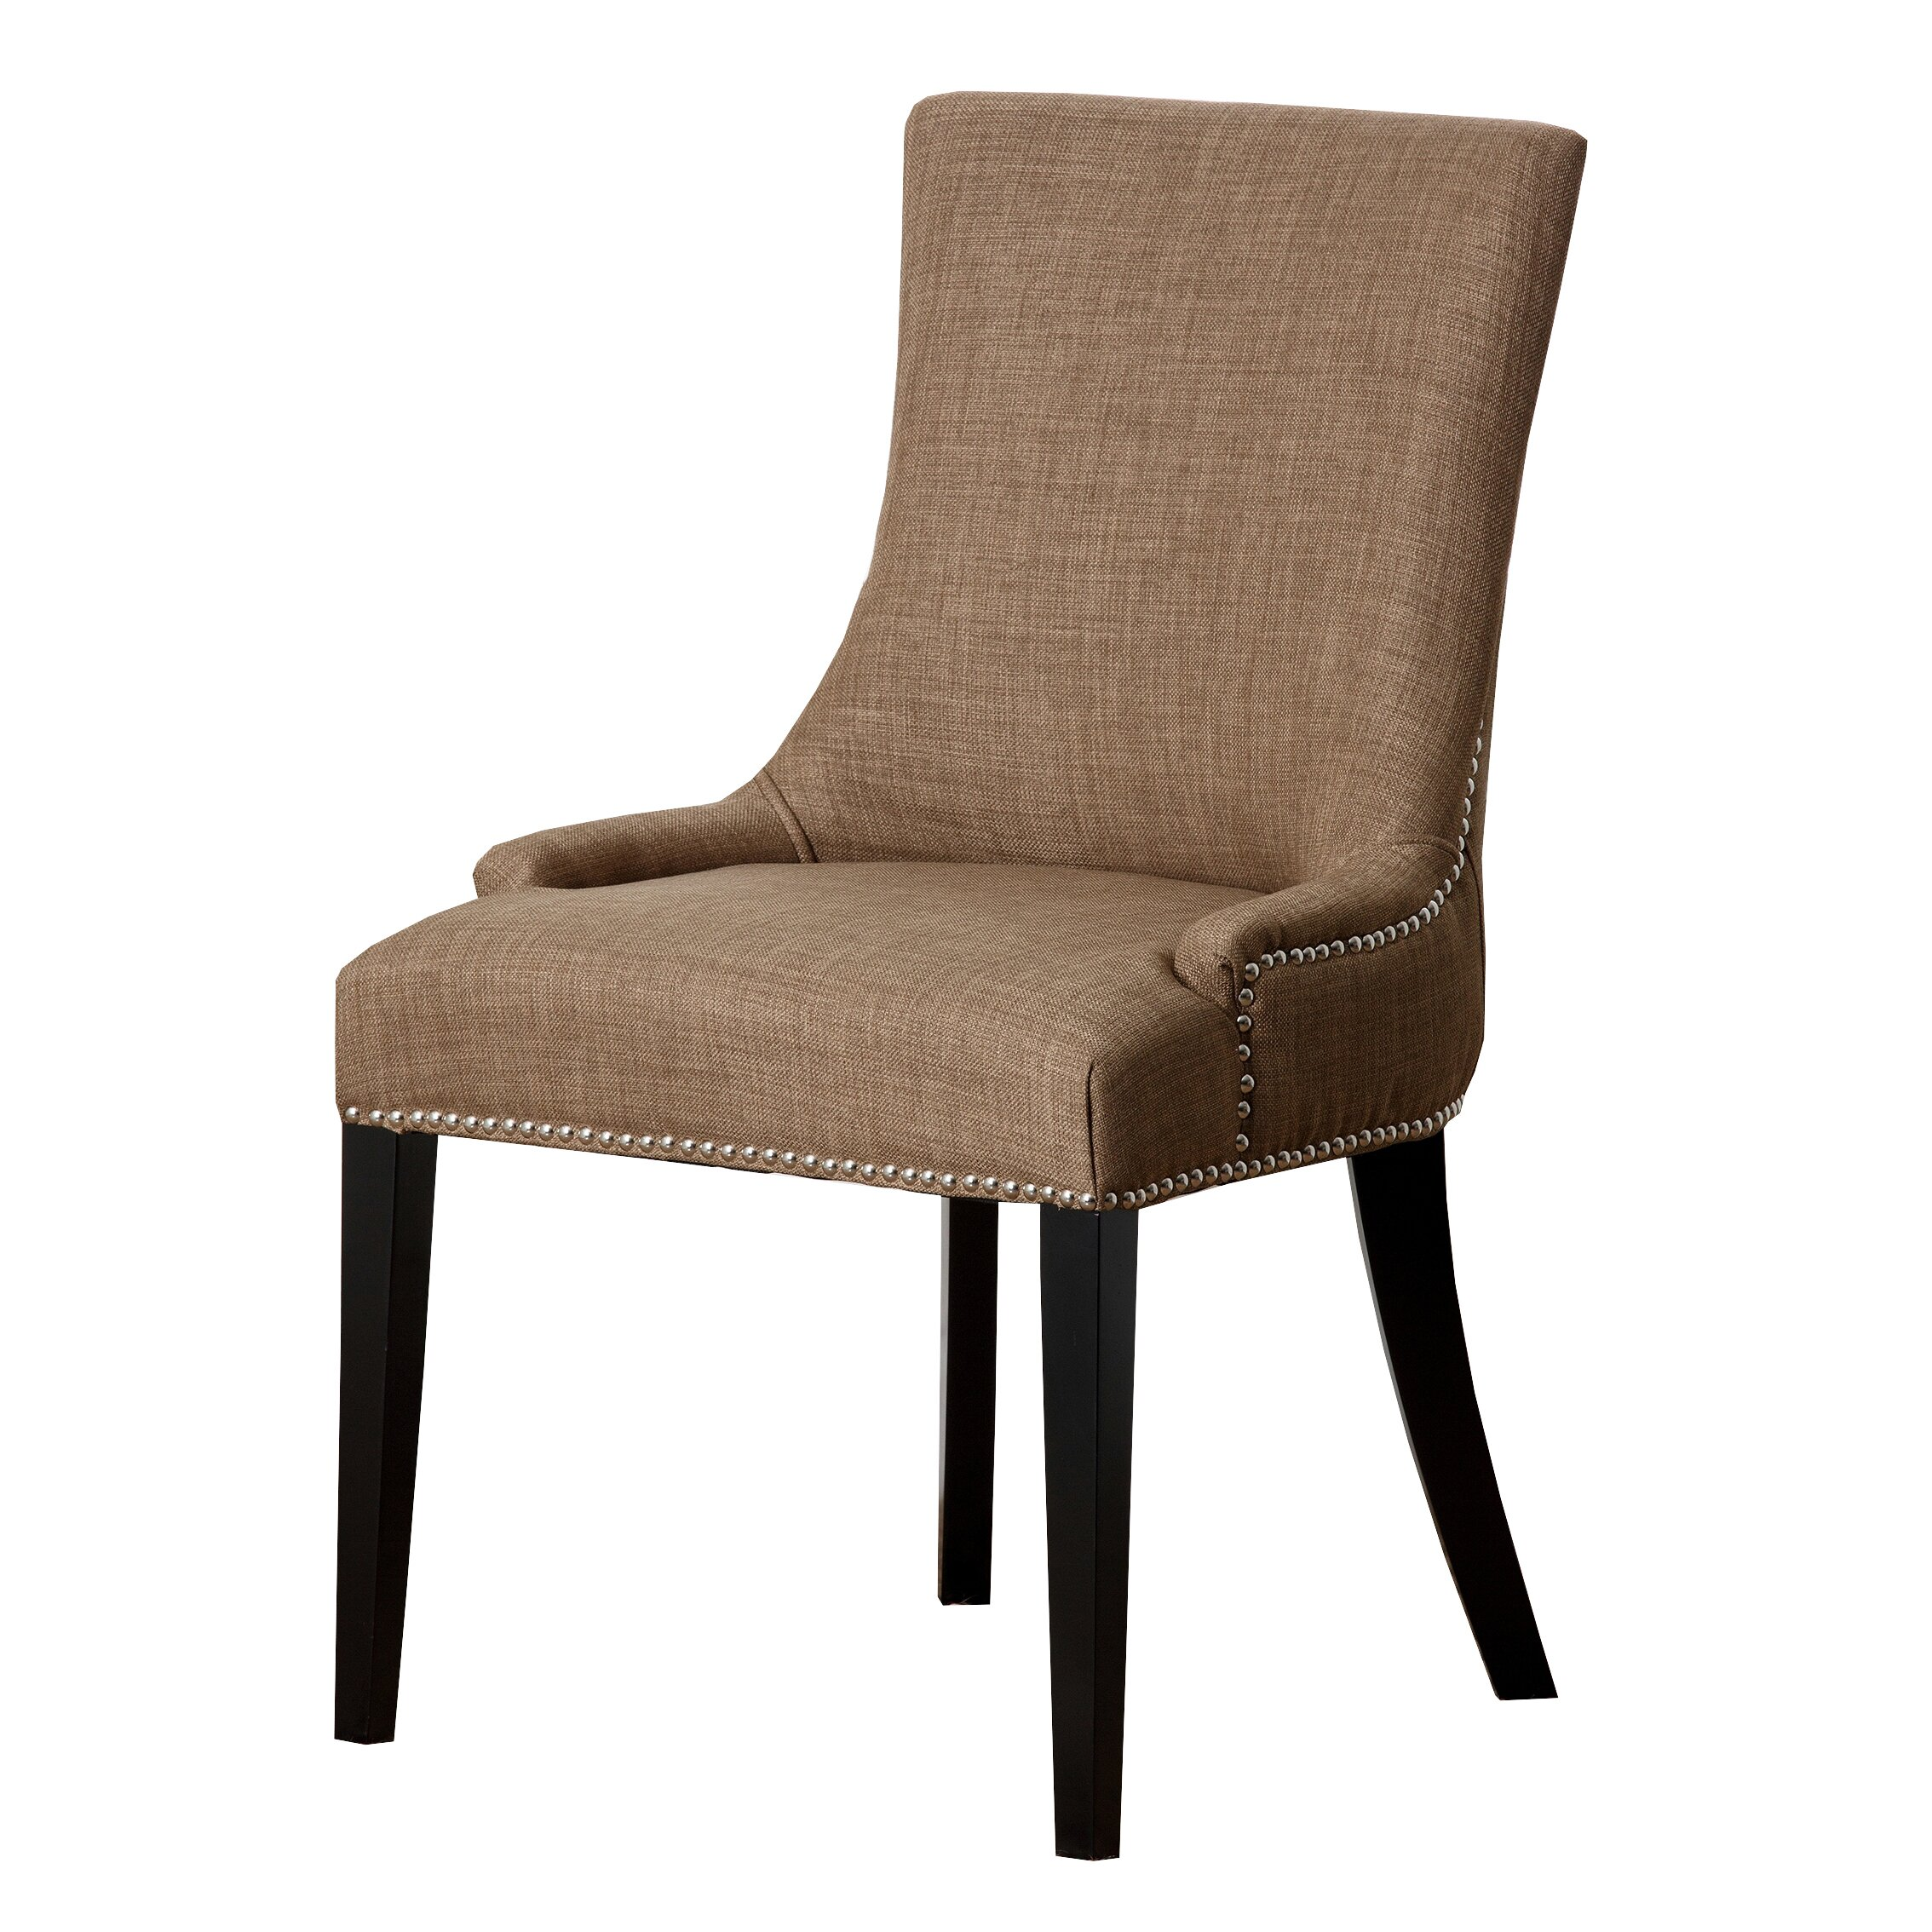 Latitude Run Arline Nailhead Dining Chair & Reviews